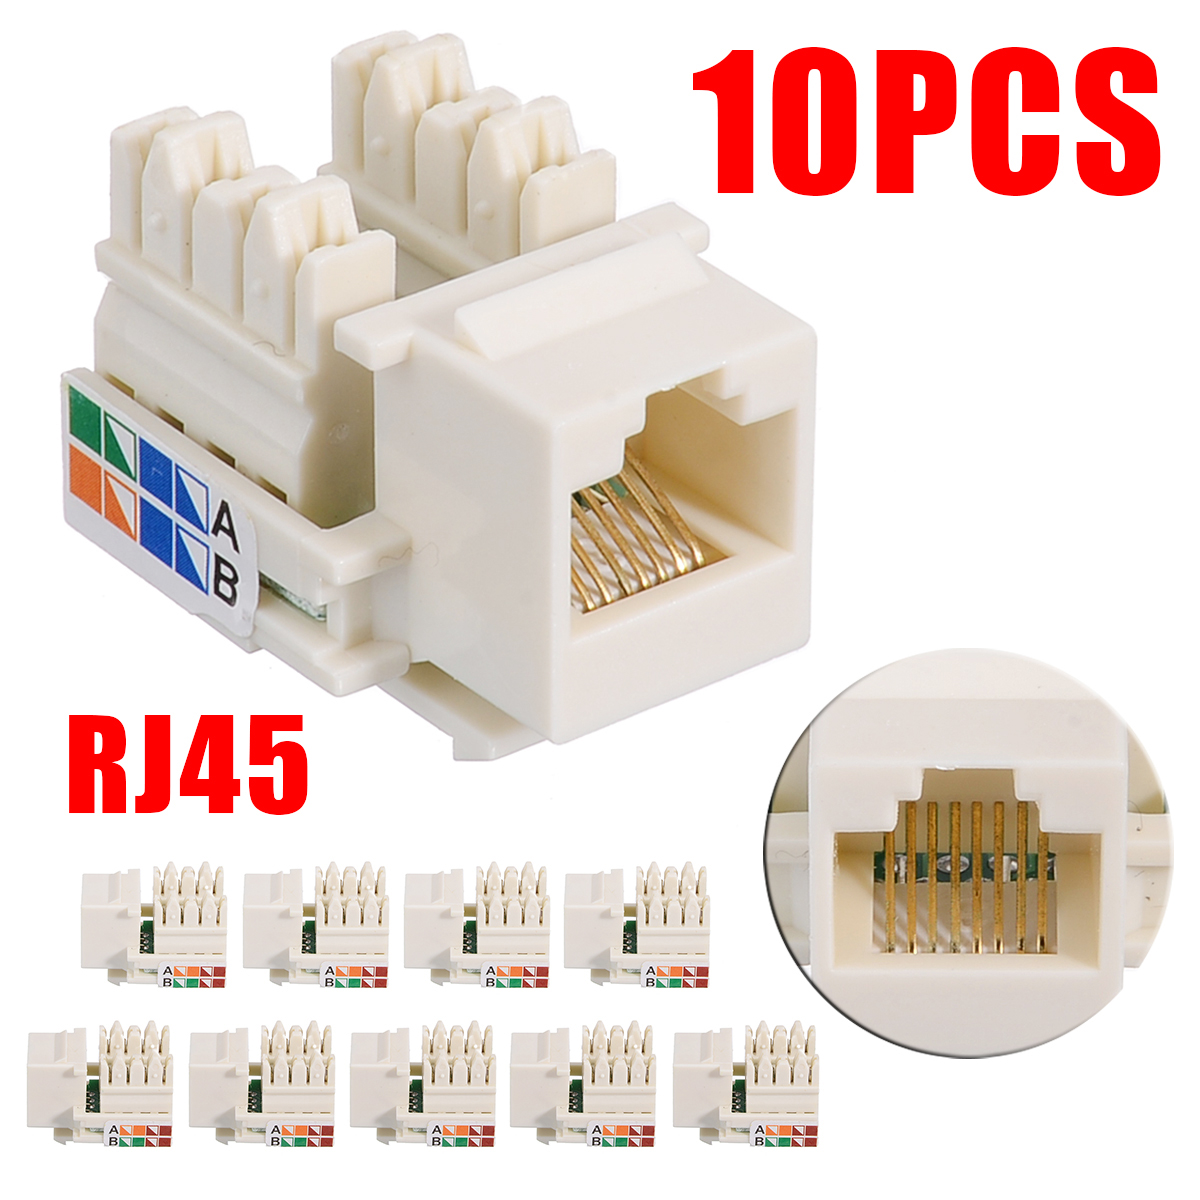 Computer Parts 10Pcs RJ45 CAT5e Keystone Jack 8P8C Panel-type Unshielded Ethernet Network Clip Module Wall Plug Connector